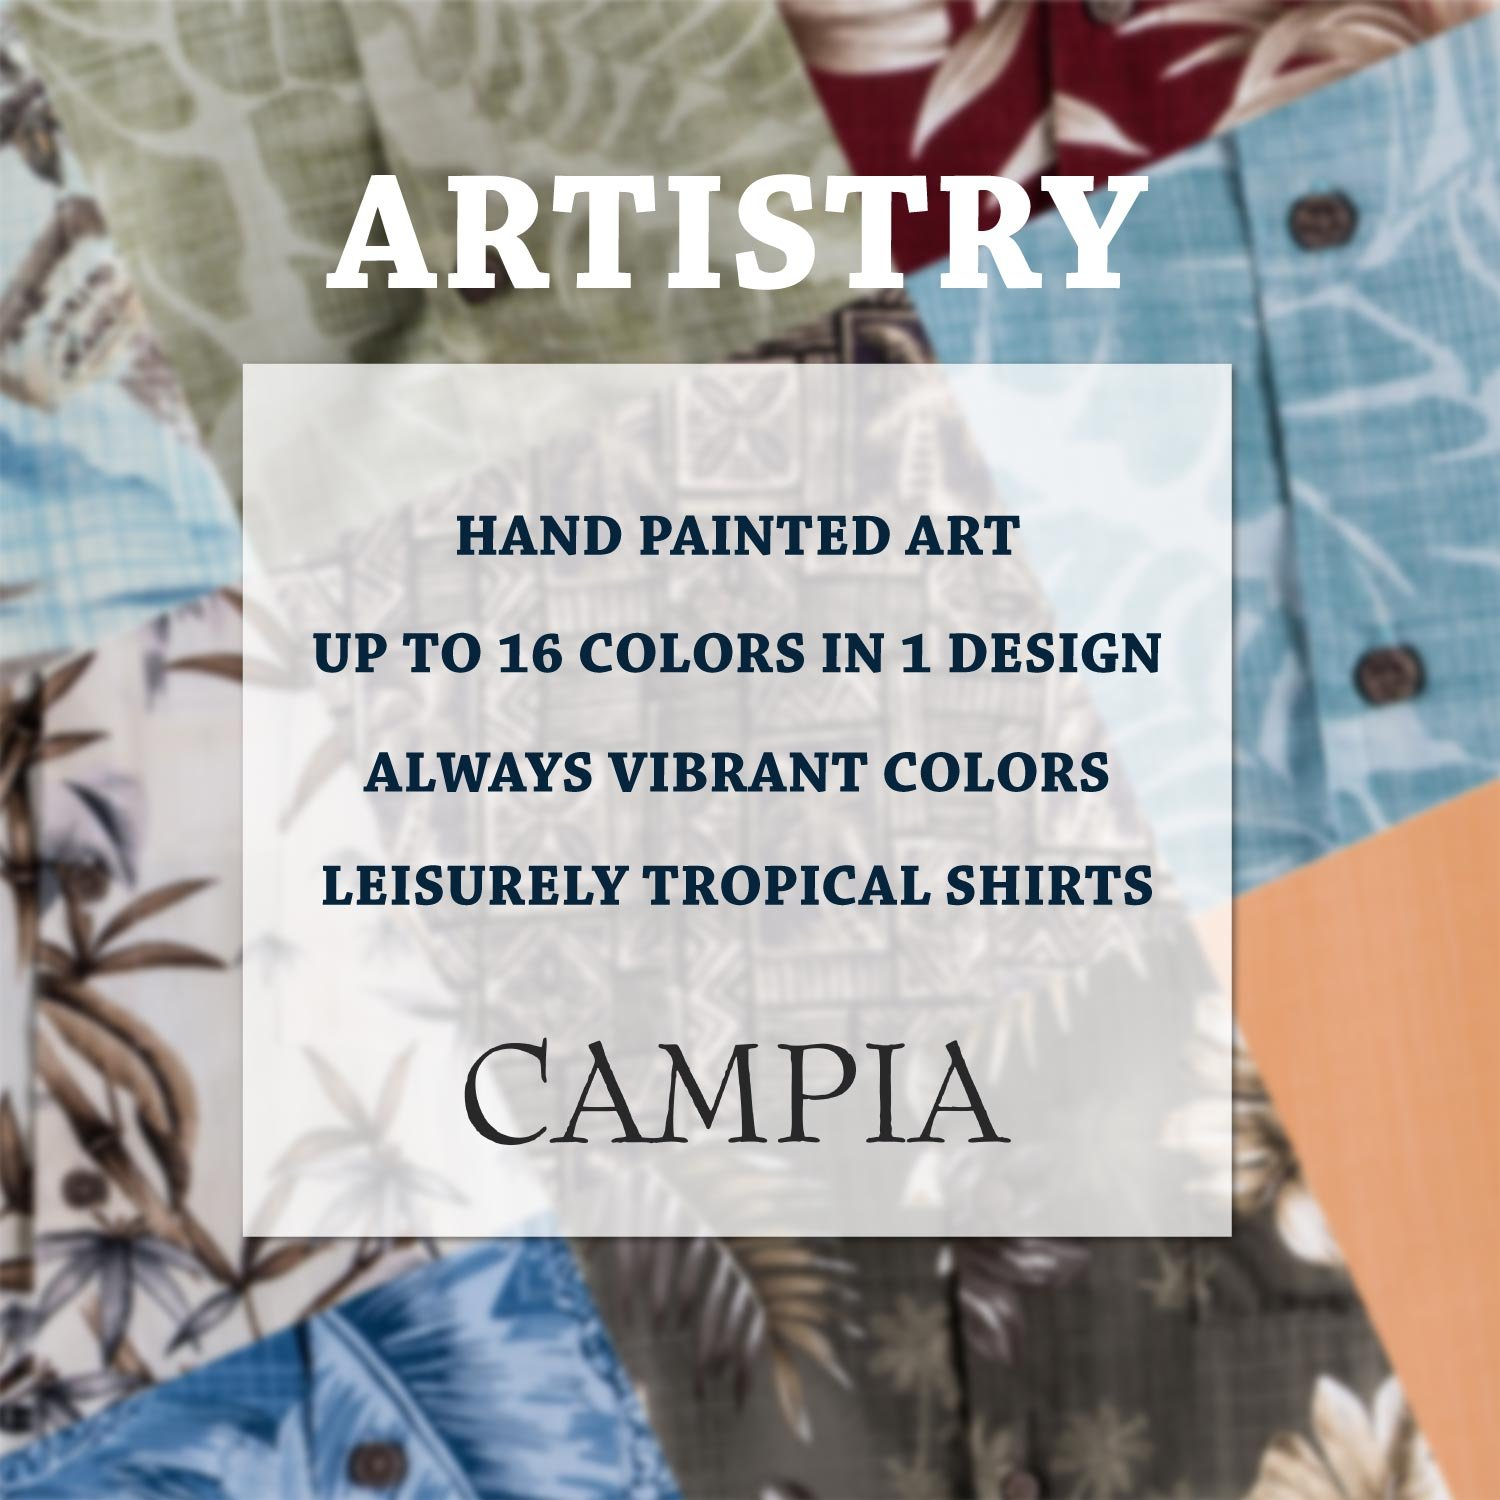 Campia Men/'s Classic Button Down Shirt Short Sleeves in Solid Colors